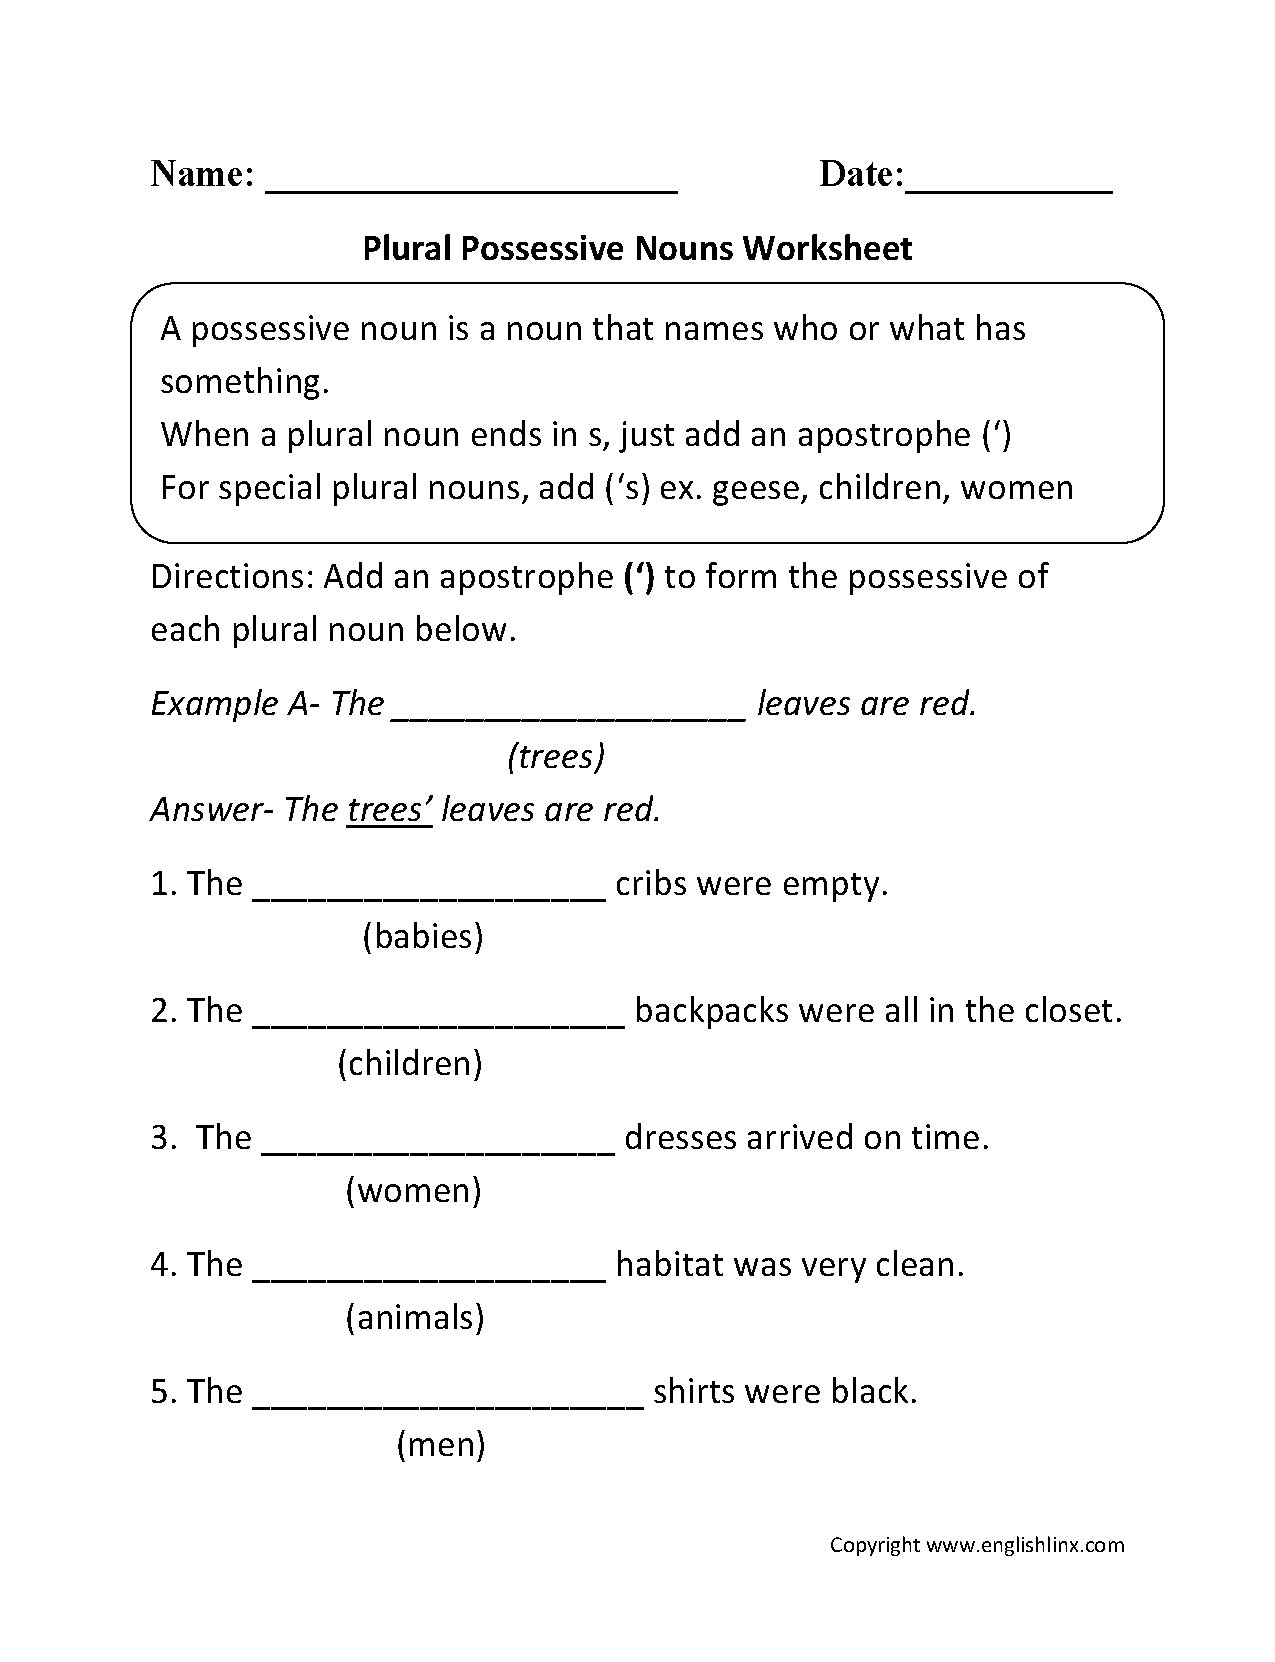 Aldiablosus  Pleasant Nouns Worksheets  Possessive Nouns Worksheets With Fair Possessive Nouns Worksheets With Alluring Aztec Worksheet Also Rebus Puzzles Answers Worksheets In Addition Shapes Worksheets Preschool And Intervention Central Math Worksheet Generator As Well As Coping Skill Worksheets Additionally Casey At The Bat Worksheet From Englishlinxcom With Aldiablosus  Fair Nouns Worksheets  Possessive Nouns Worksheets With Alluring Possessive Nouns Worksheets And Pleasant Aztec Worksheet Also Rebus Puzzles Answers Worksheets In Addition Shapes Worksheets Preschool From Englishlinxcom